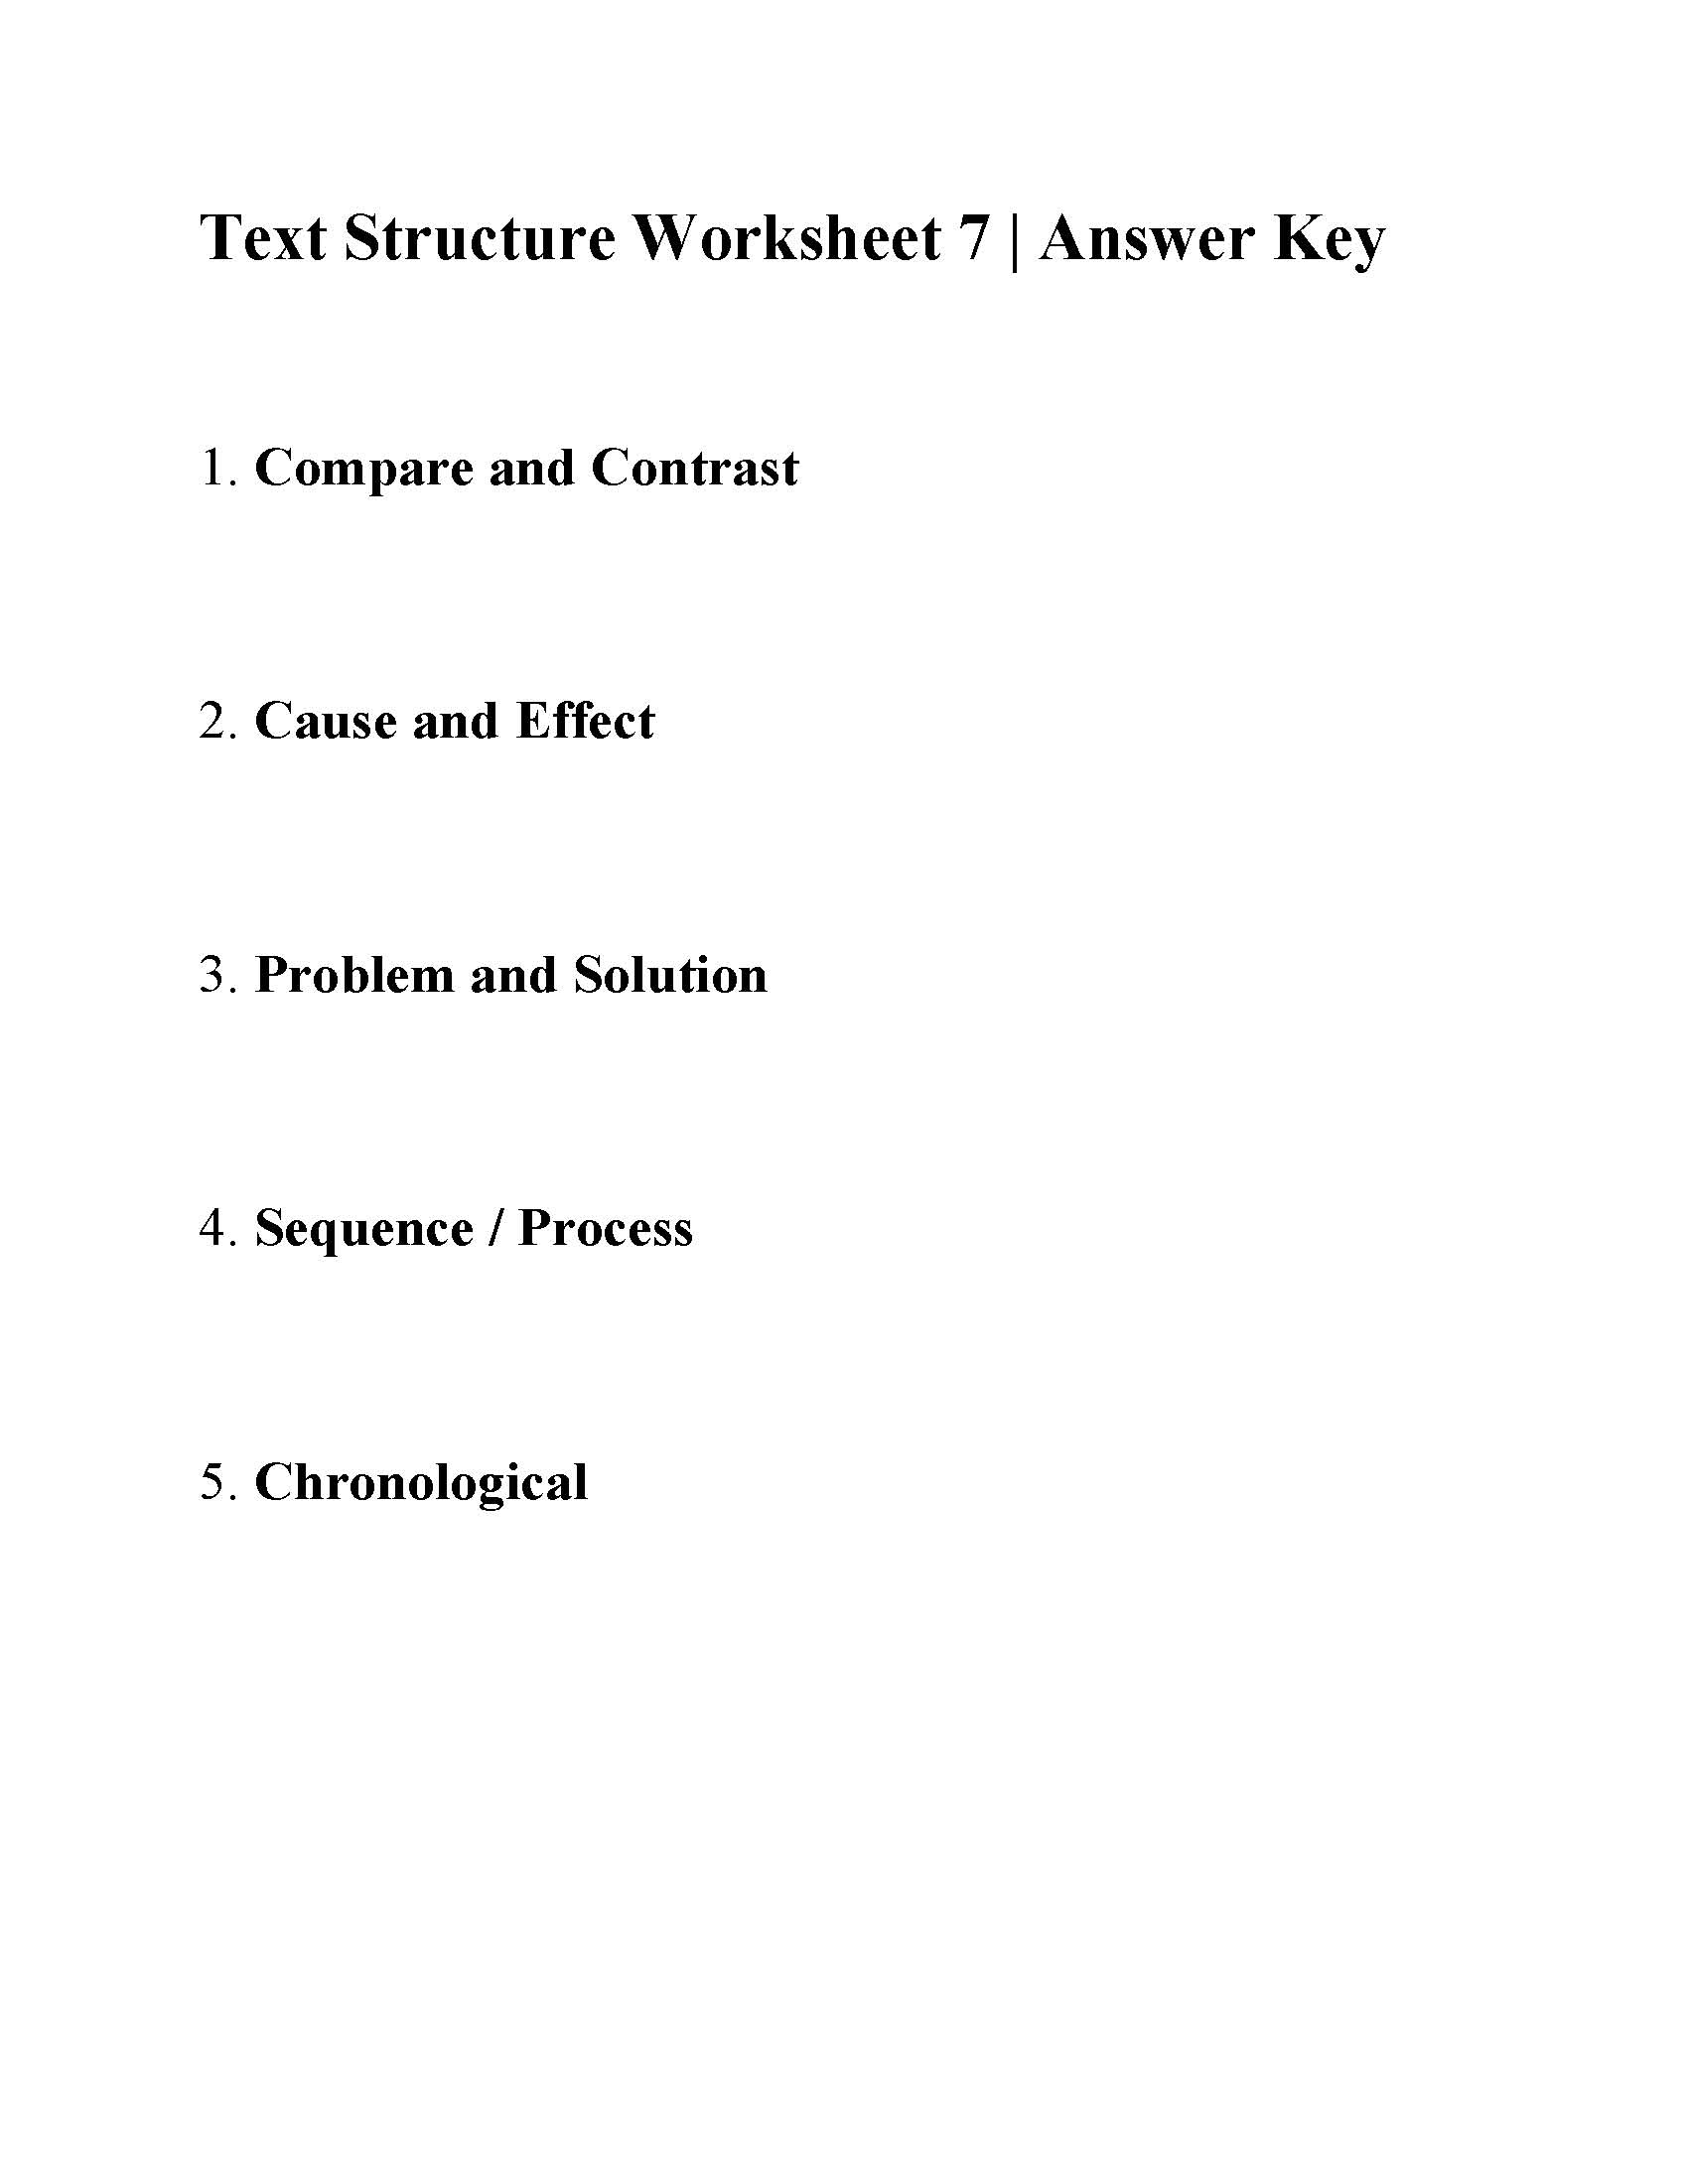 Text Structure Worksheet 7